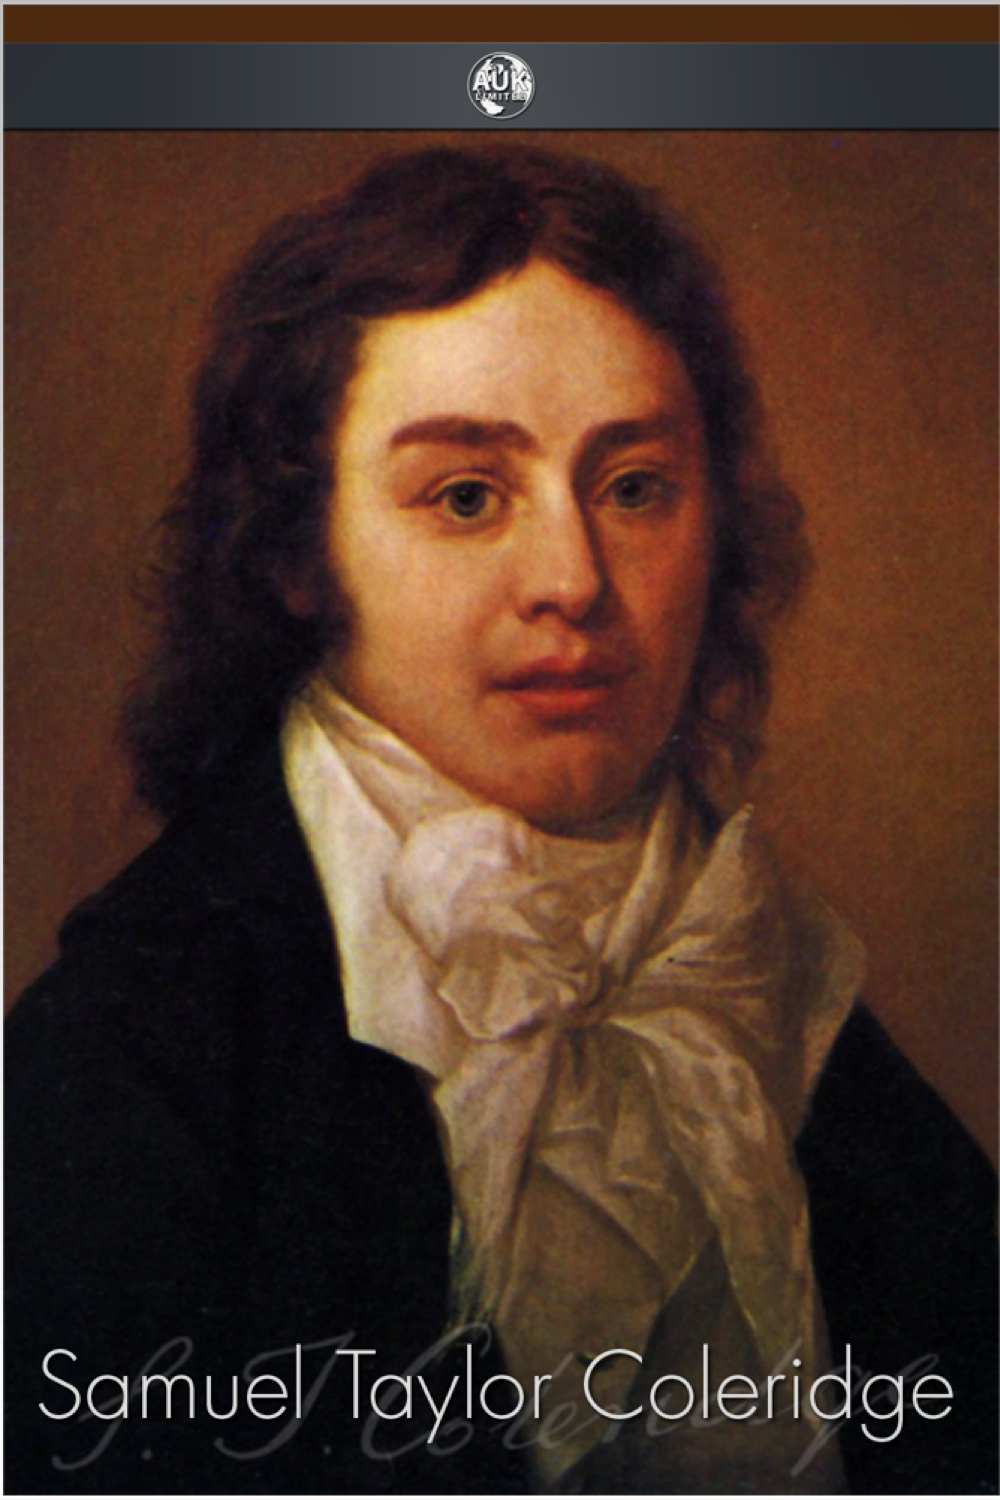 Samuel Taylor Coleridge By: James Gillman